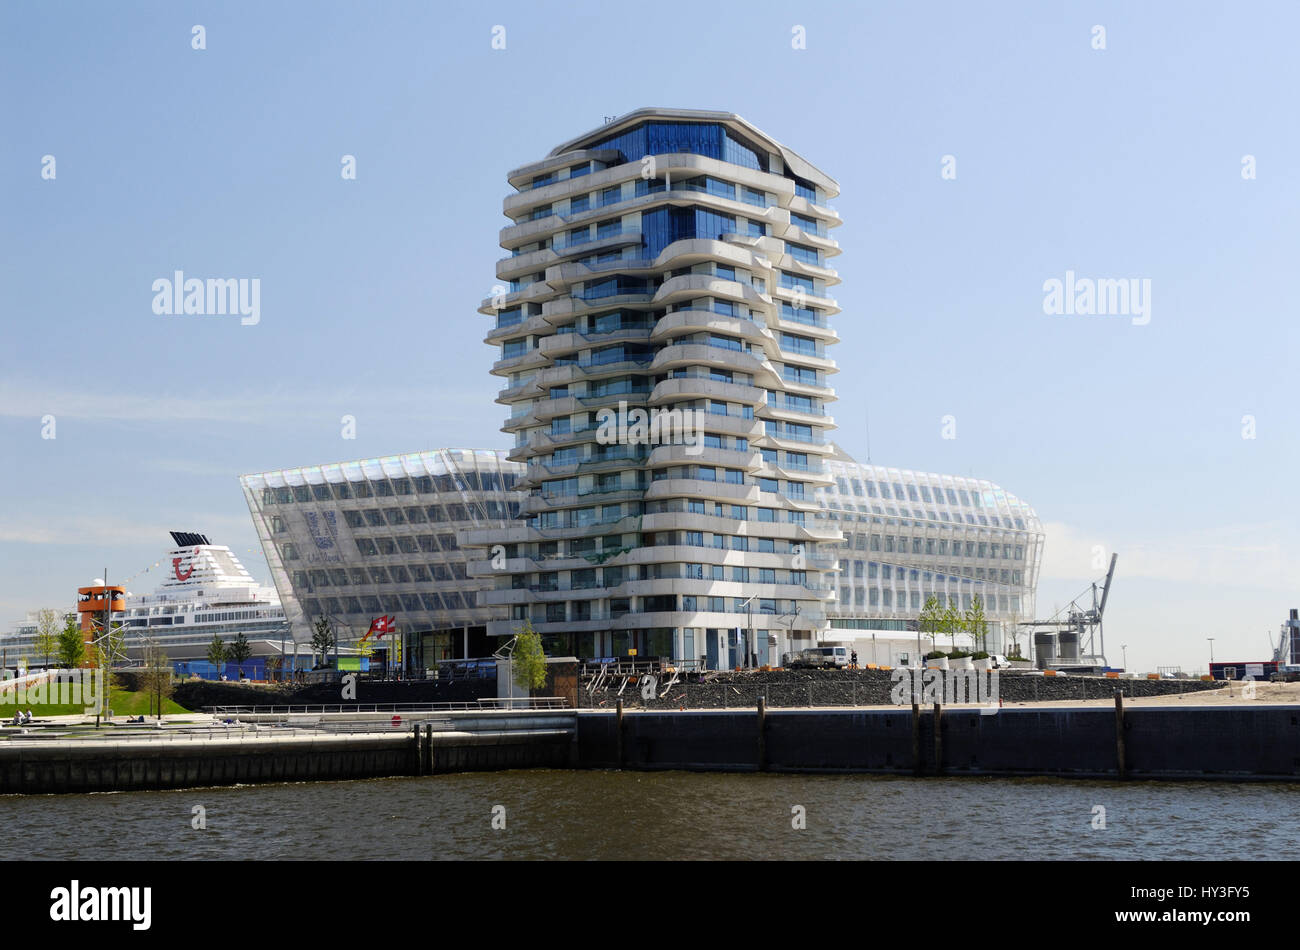 Hamburg Marco Polo Tower the residential tower marco polo tower in the quay in the